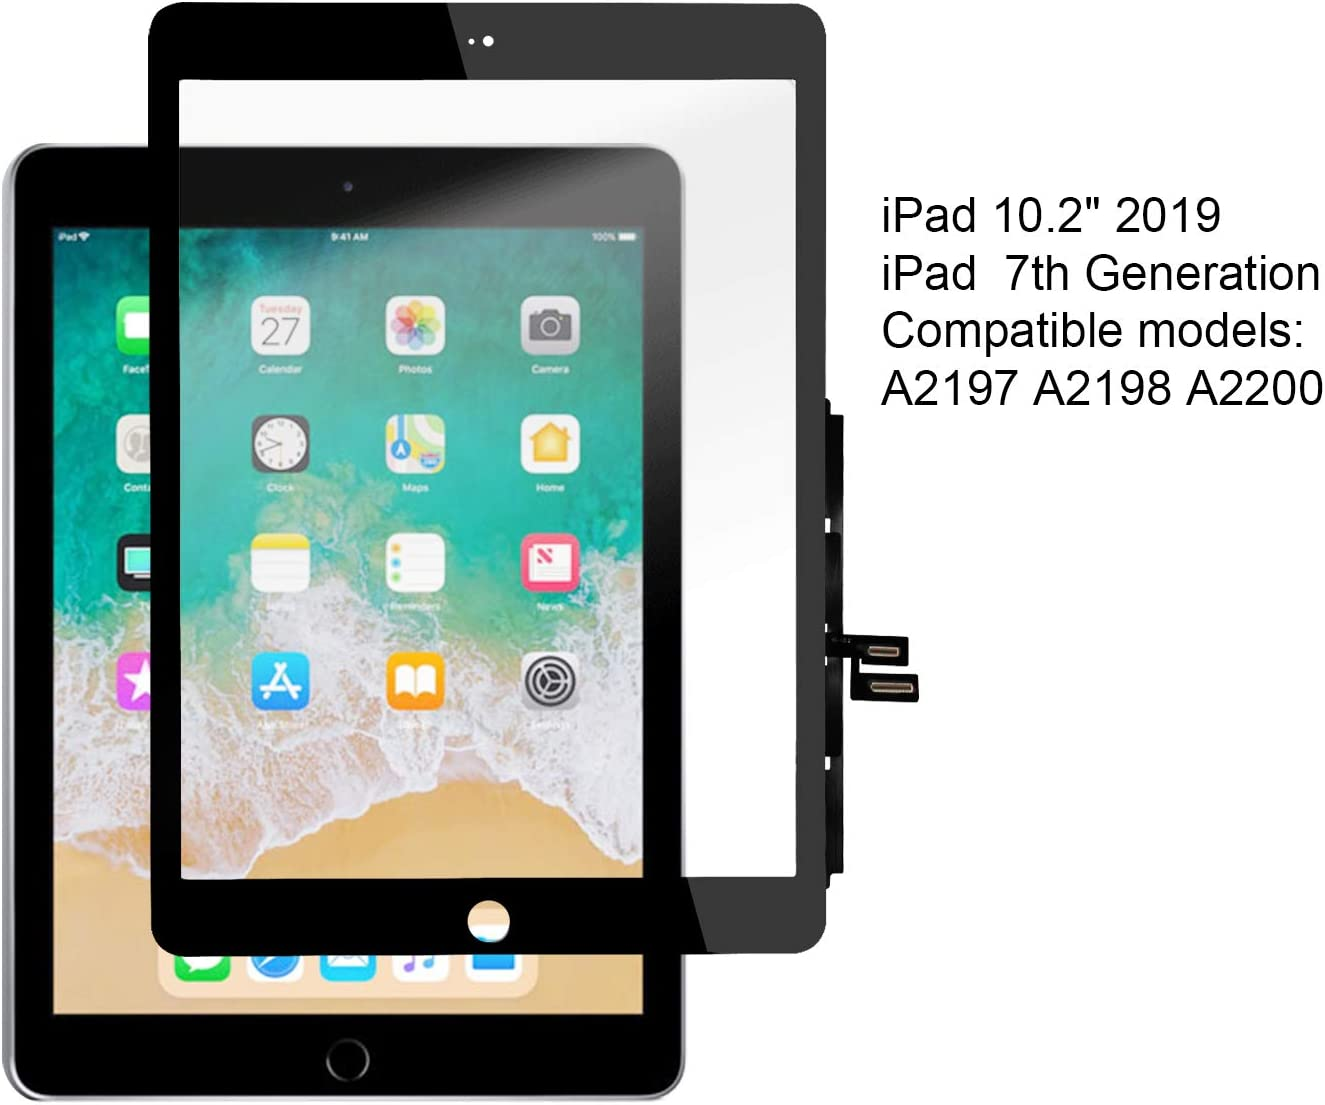 YEECHUN Touch Screen Digitizer for iPad 7 2019 7th Gen 10.2 A2197 A2198 A2200 Front Glass Replacement Without The Home Button, Tool Repair kit Included